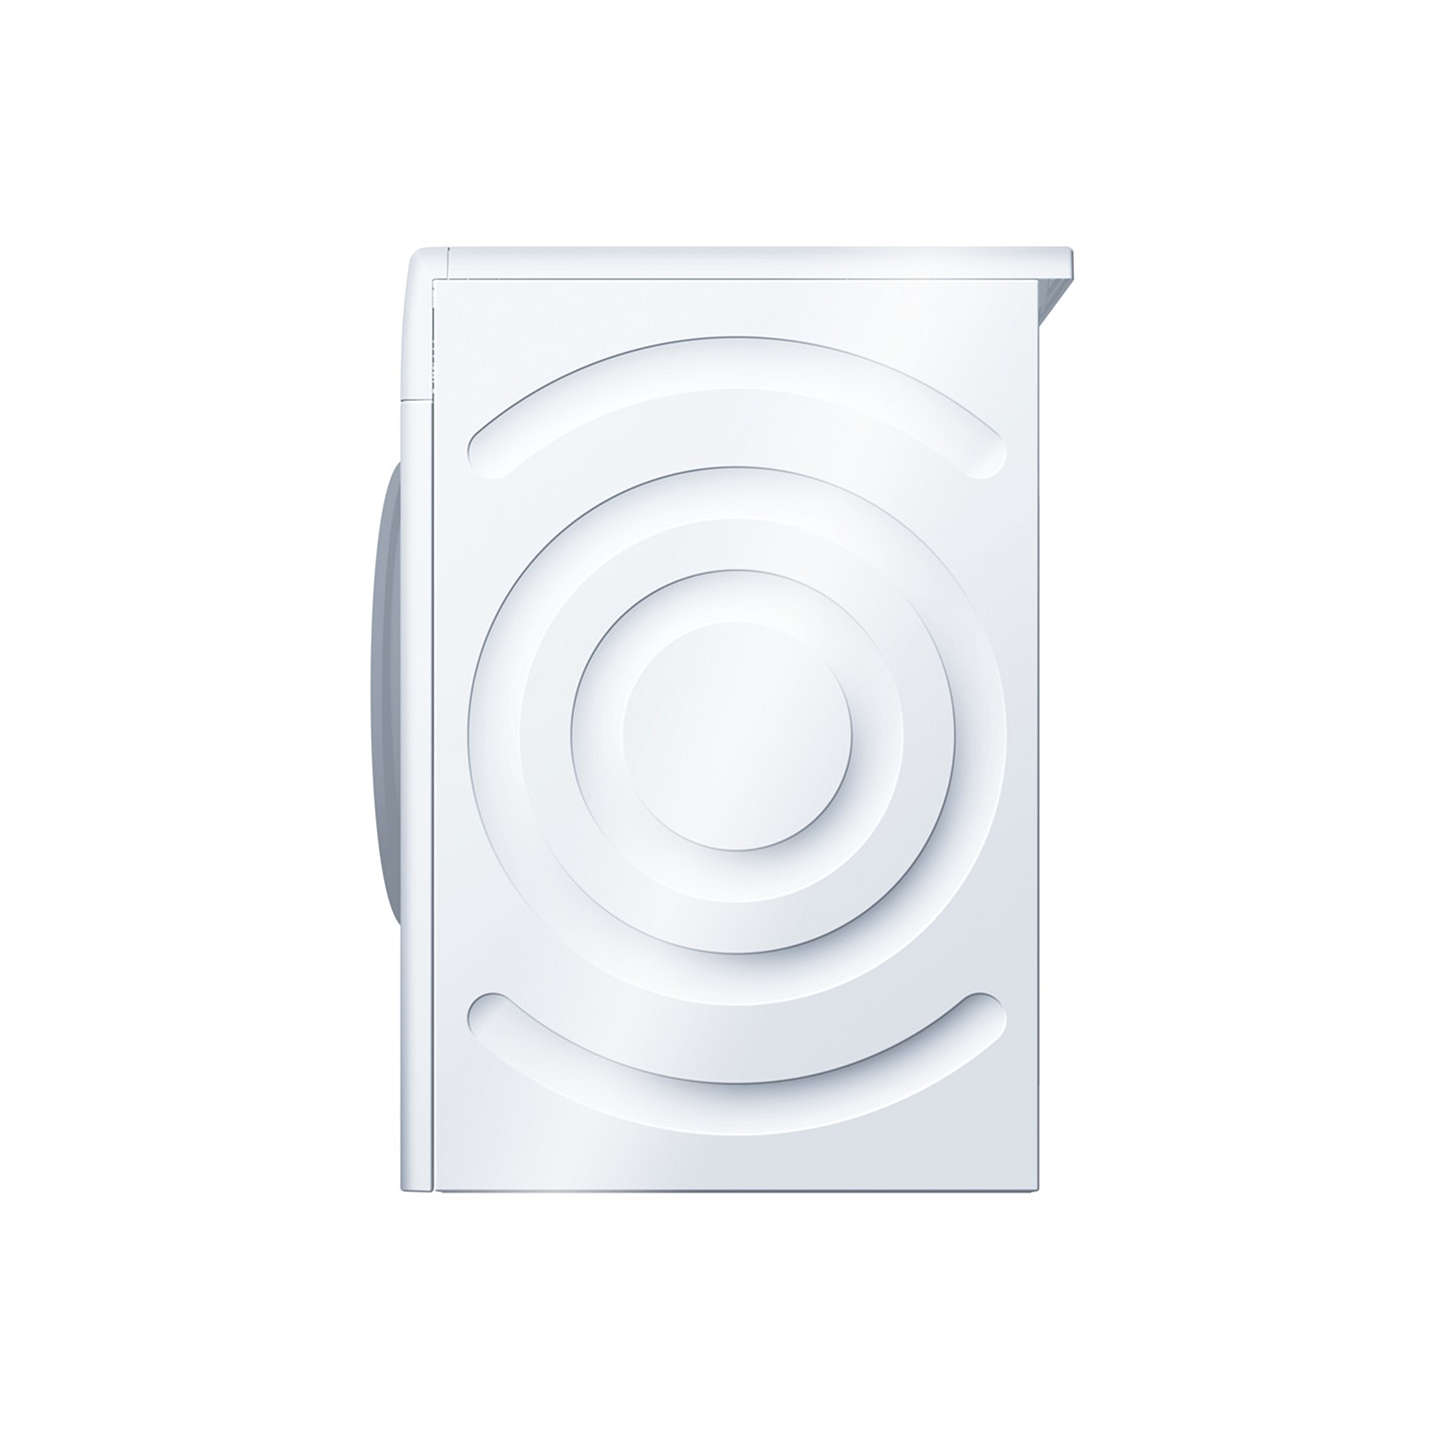 BuyBosch WVG30461GB Freestanding Washer Dryer, 8kg Wash/5kg Dry Load, A Energy Rating, 1500rpm Spin, White Online at johnlewis.com